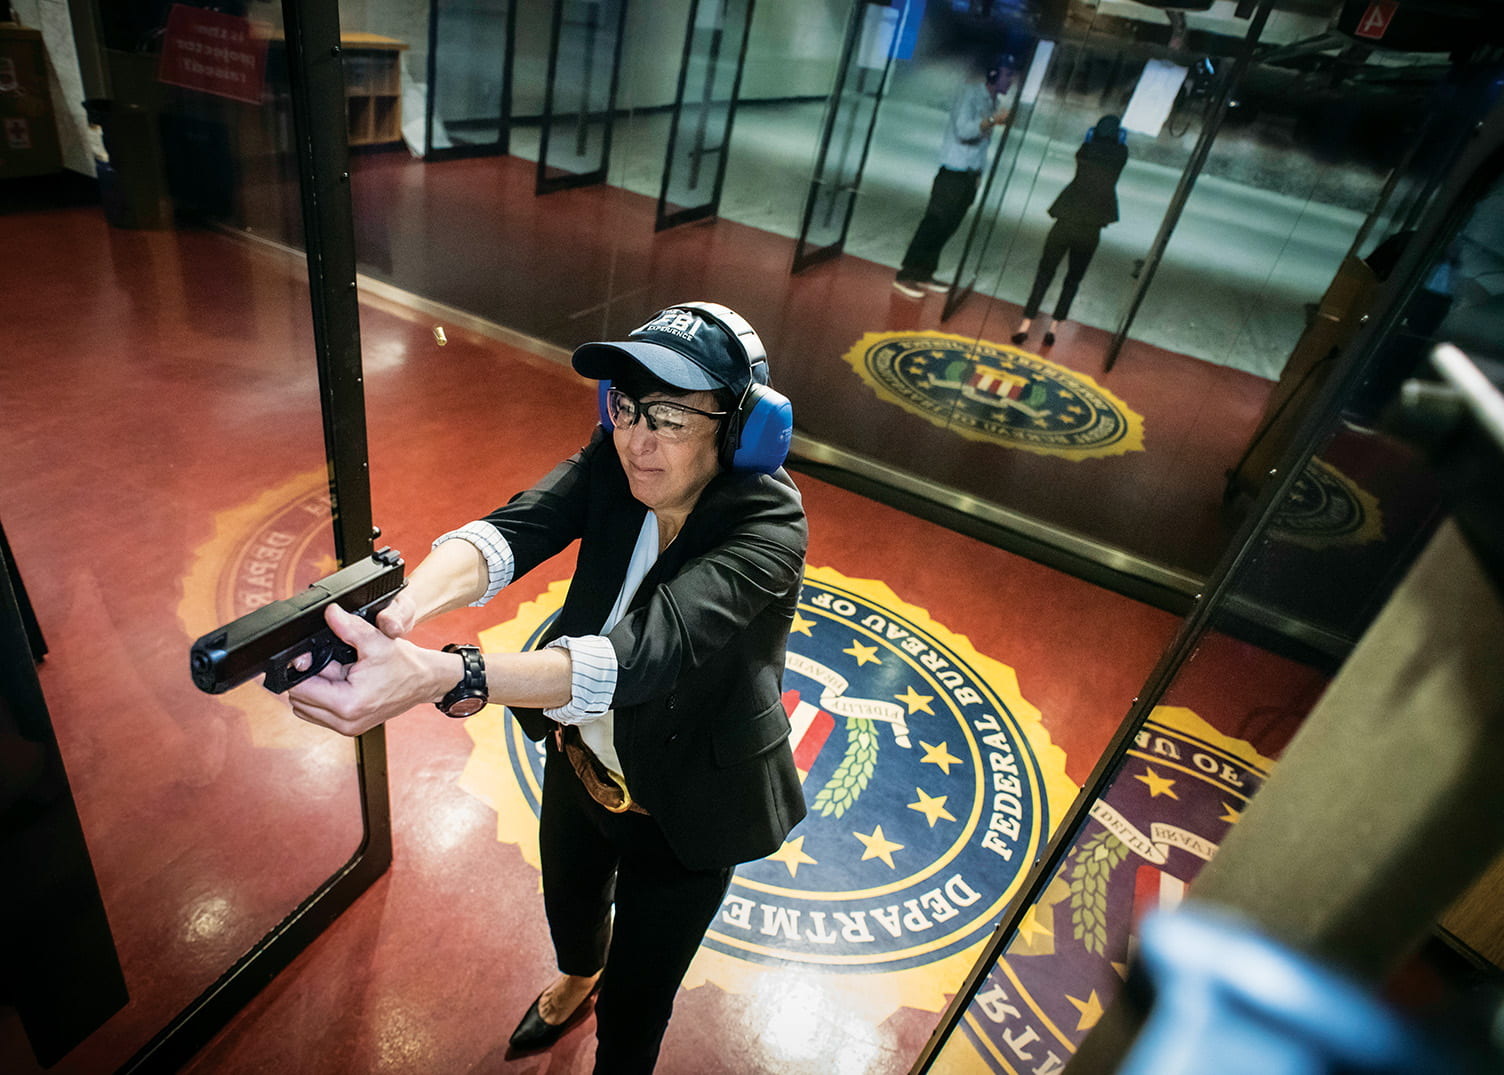 As part of her role as a special agent, Nancy McNamara '84 must undergo a firearms recertification test four times a year. She also must pass a fitness test that includes sit-ups, push-ups, a 300-meter sprint, and a 1.5-mile run.